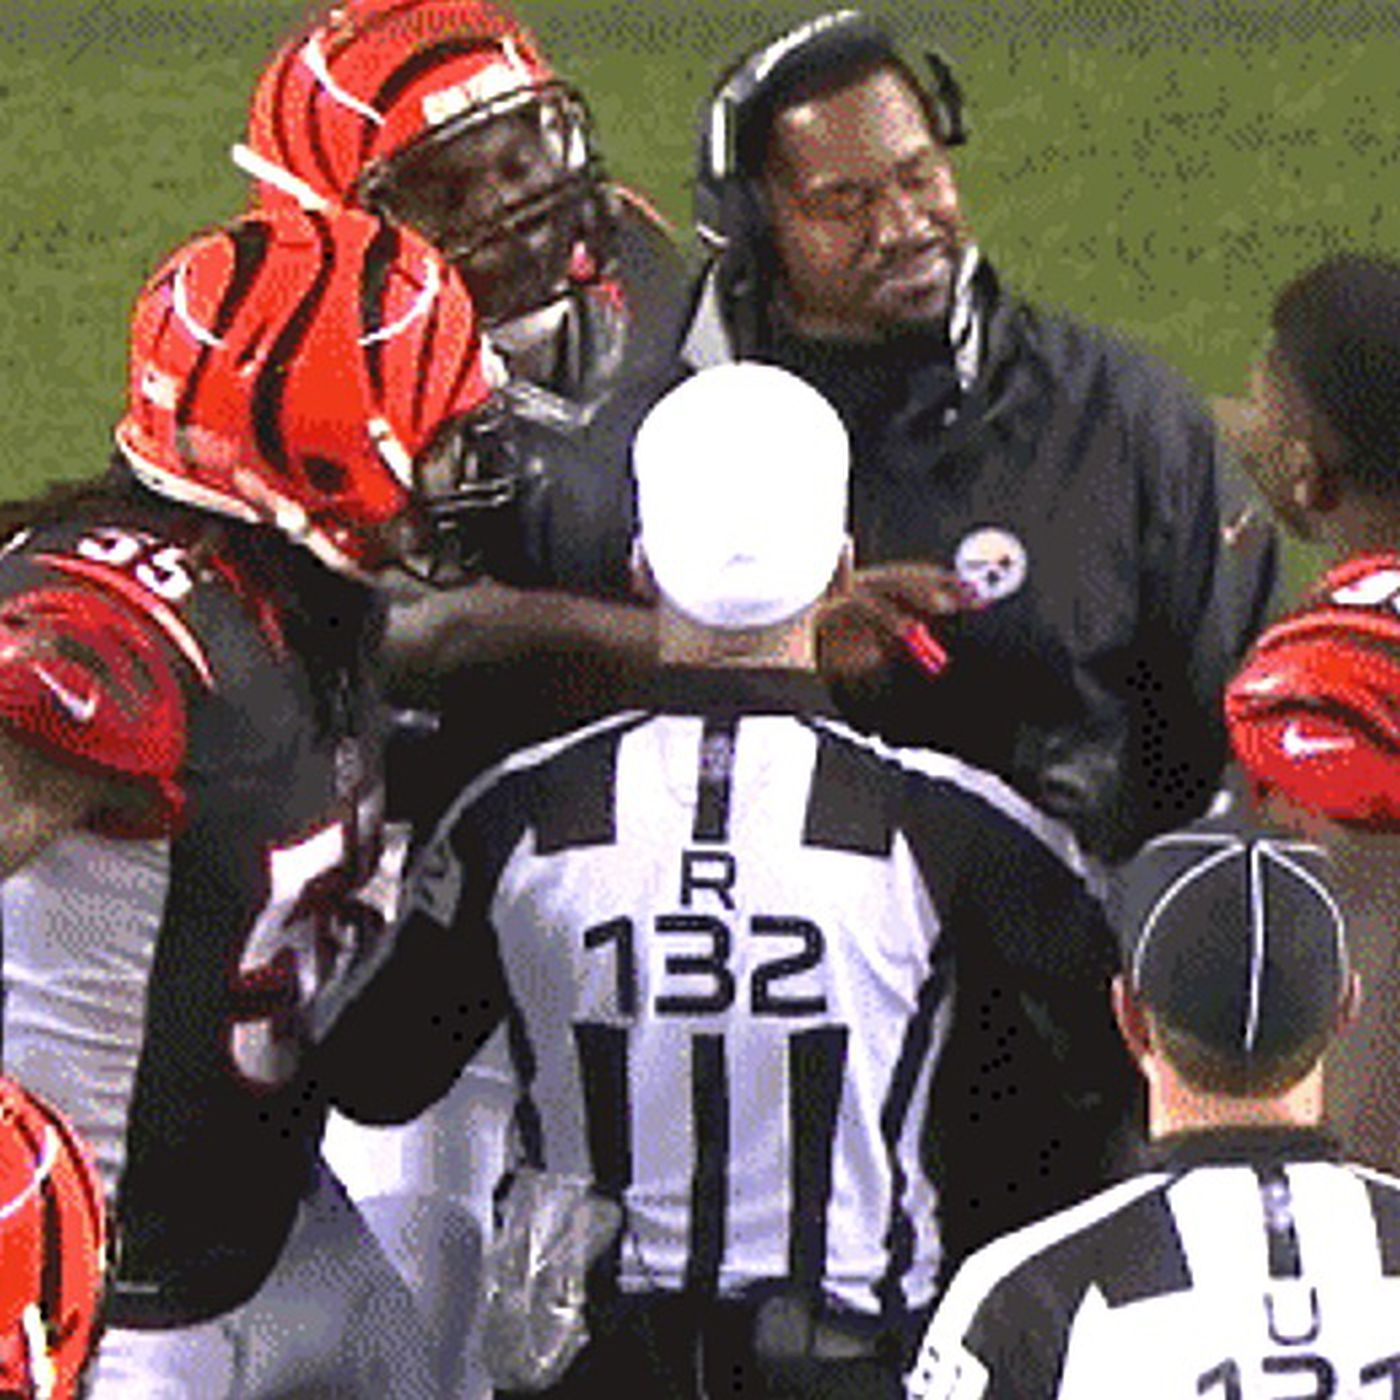 62a8367c90d The late penalty that doomed the Bengals was provoked by a Steelers coach  illegally on the field - SBNation.com